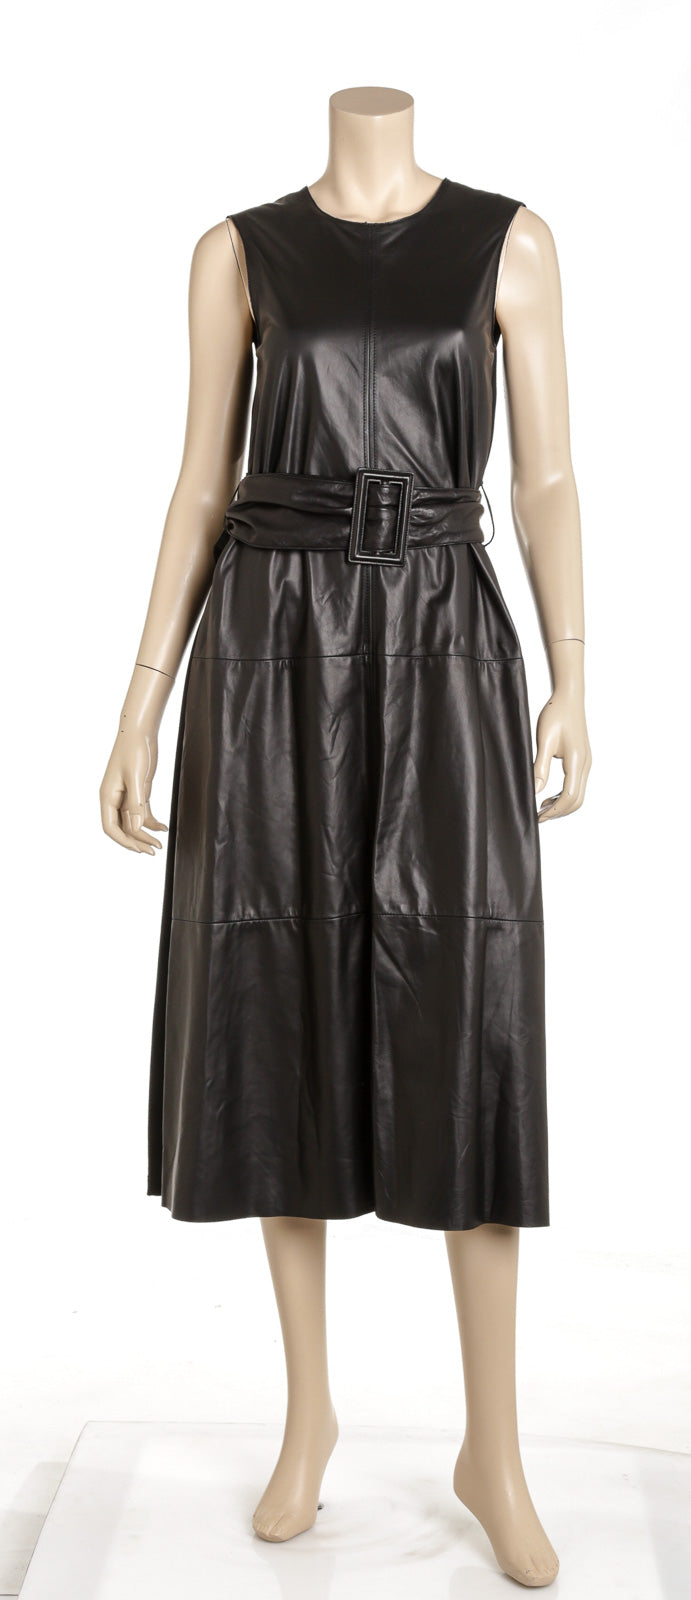 Brunello Cucinelli Black Leather Belted Sleeveless Dress Size S